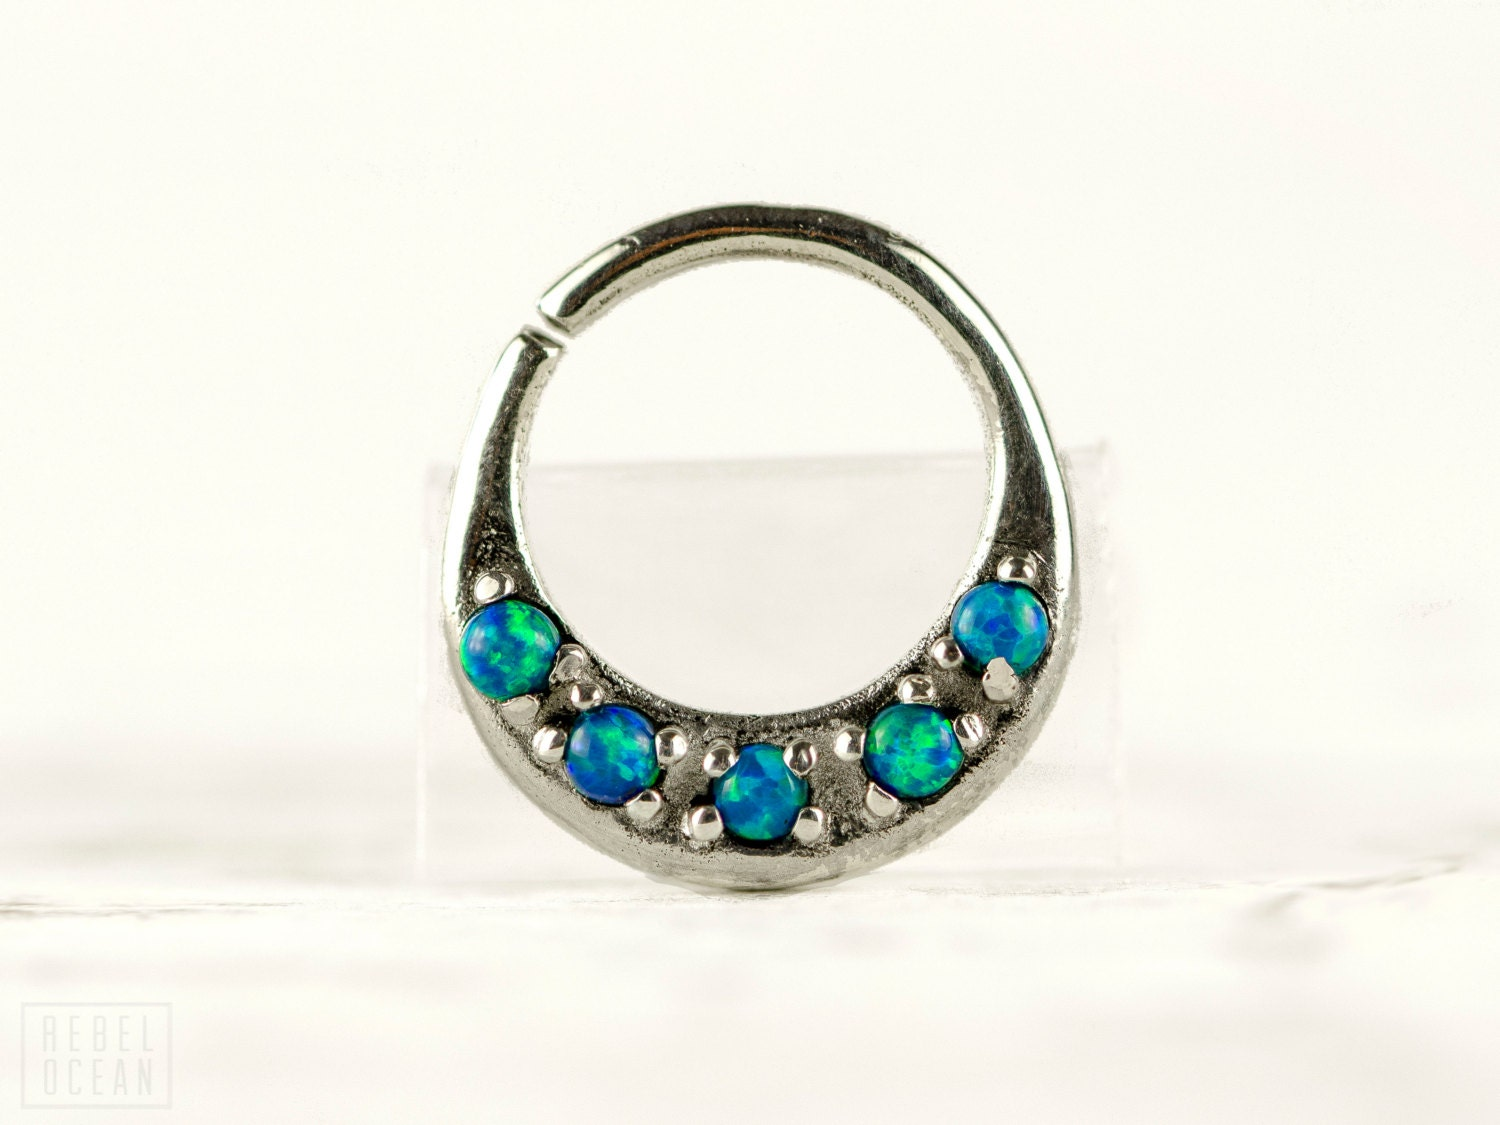 septum ring nose ring septum jewelry green blue opal